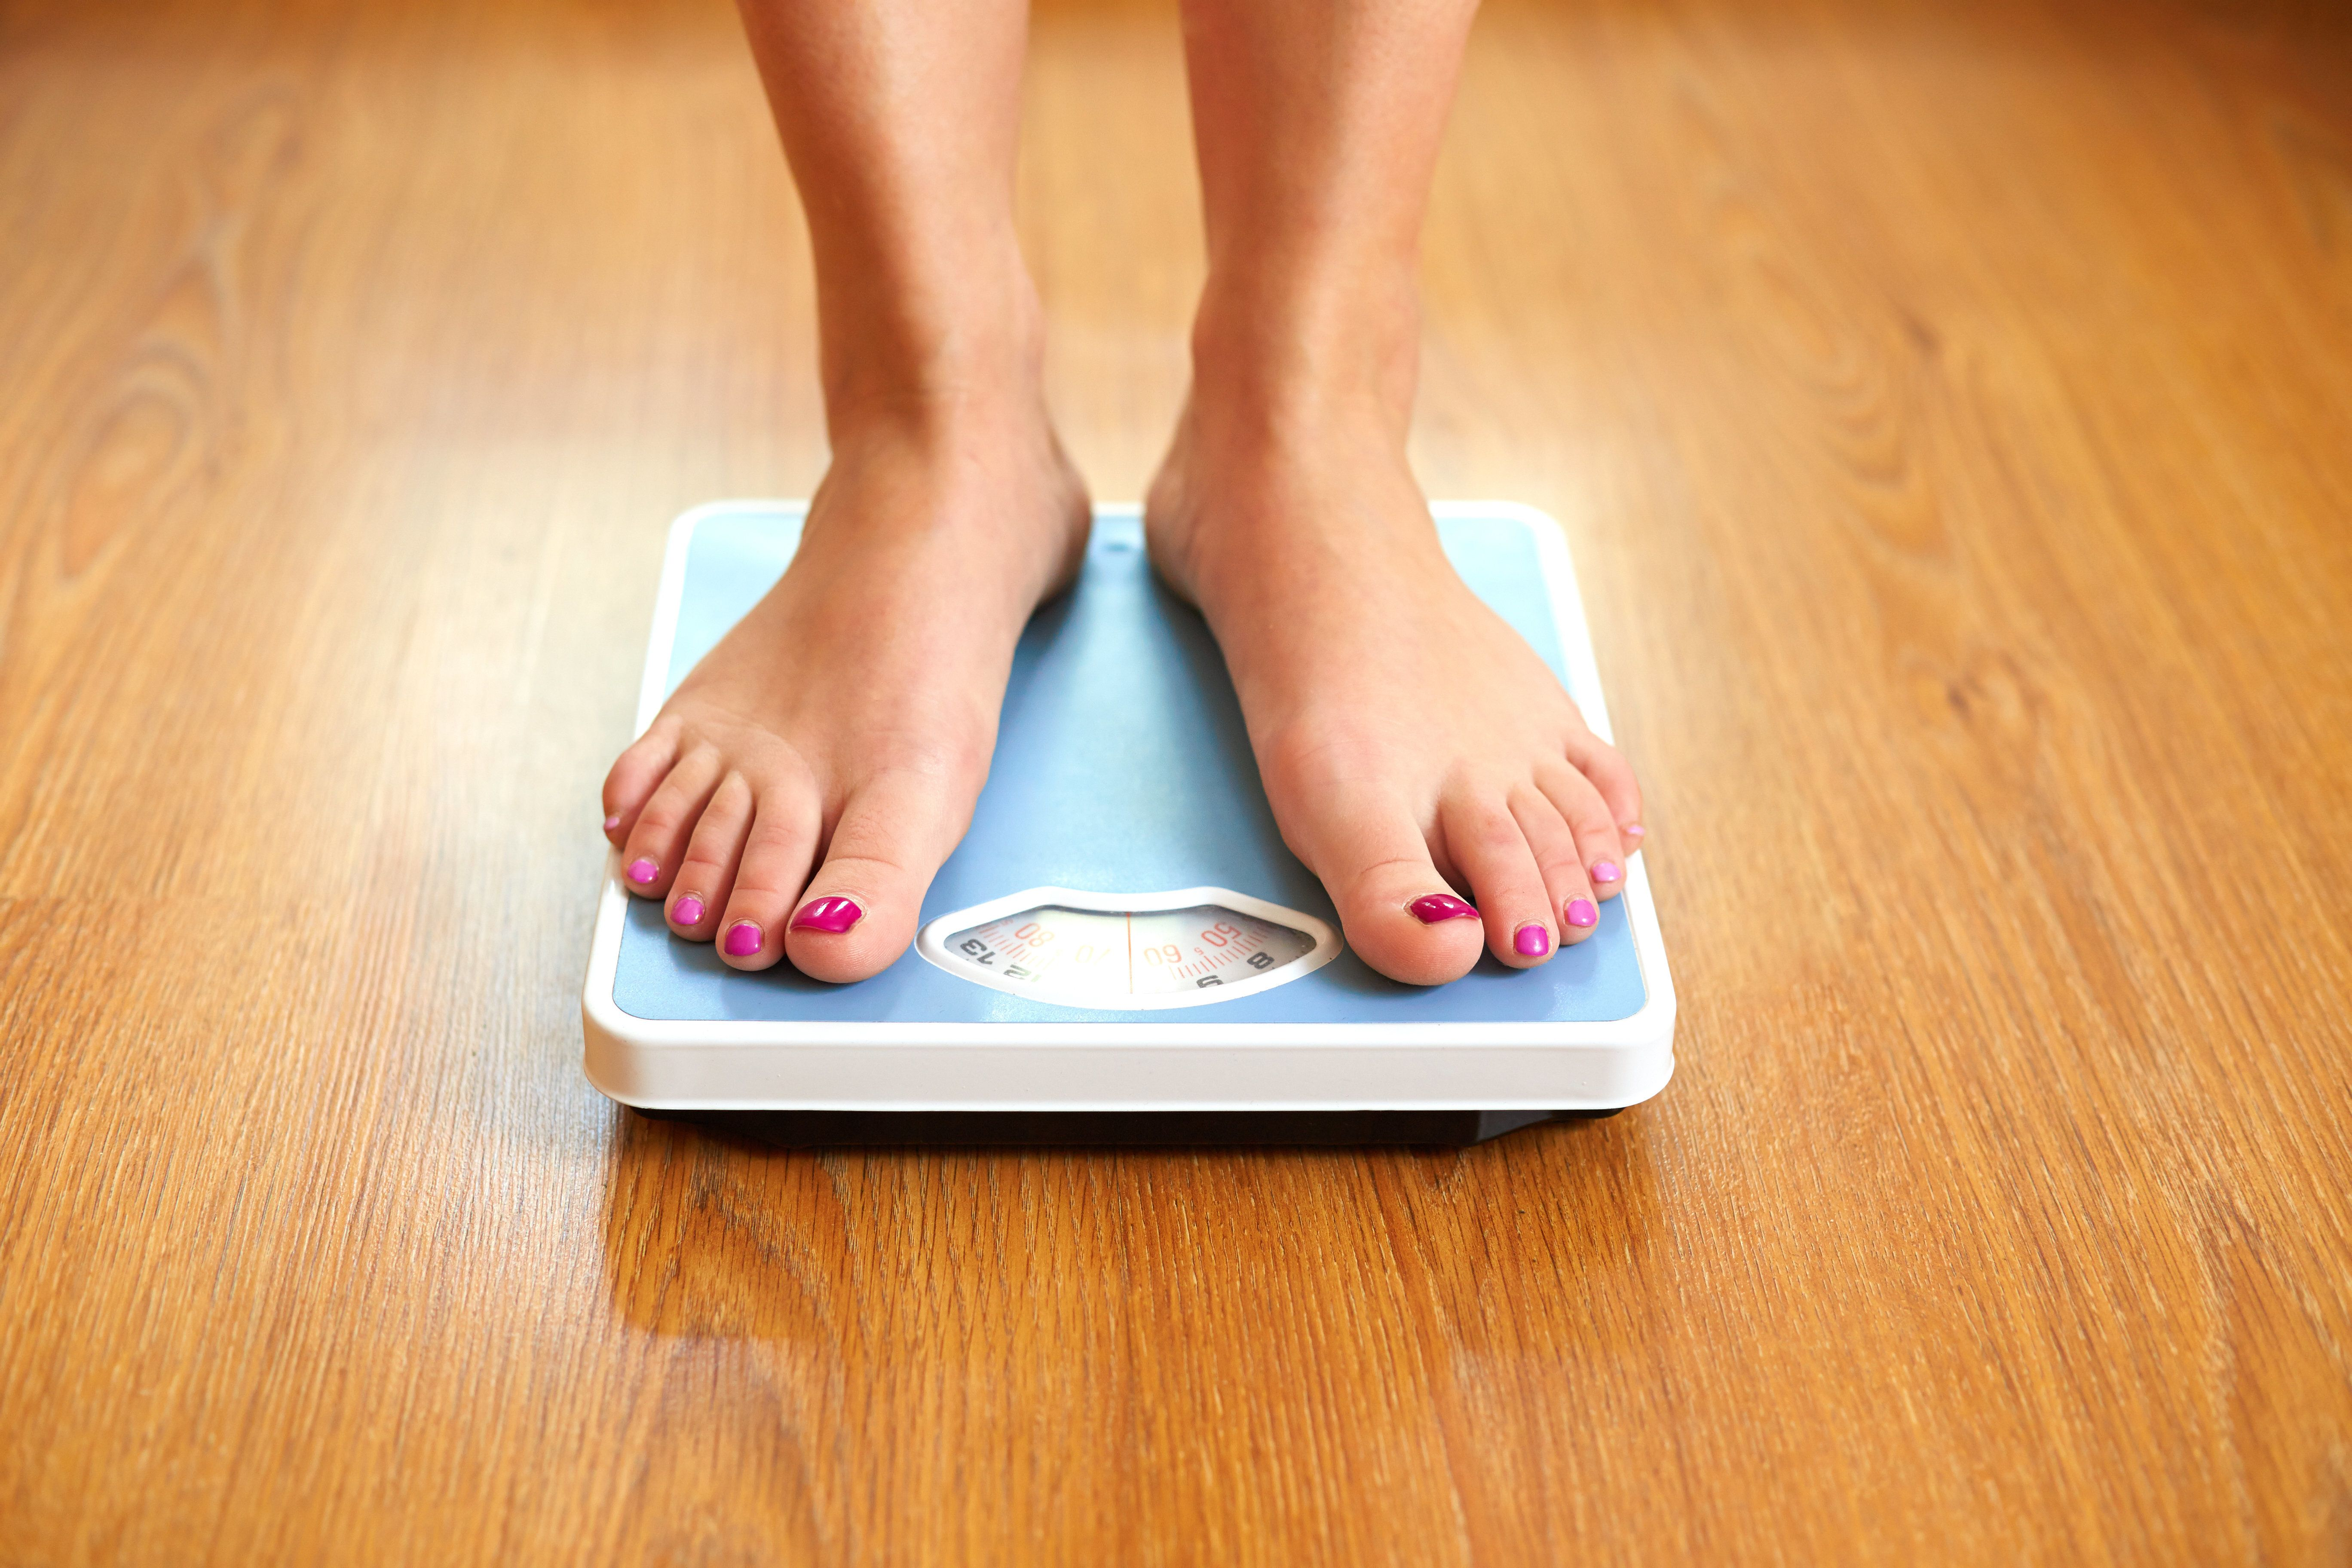 Female bare feet with weight scale on wooden floor